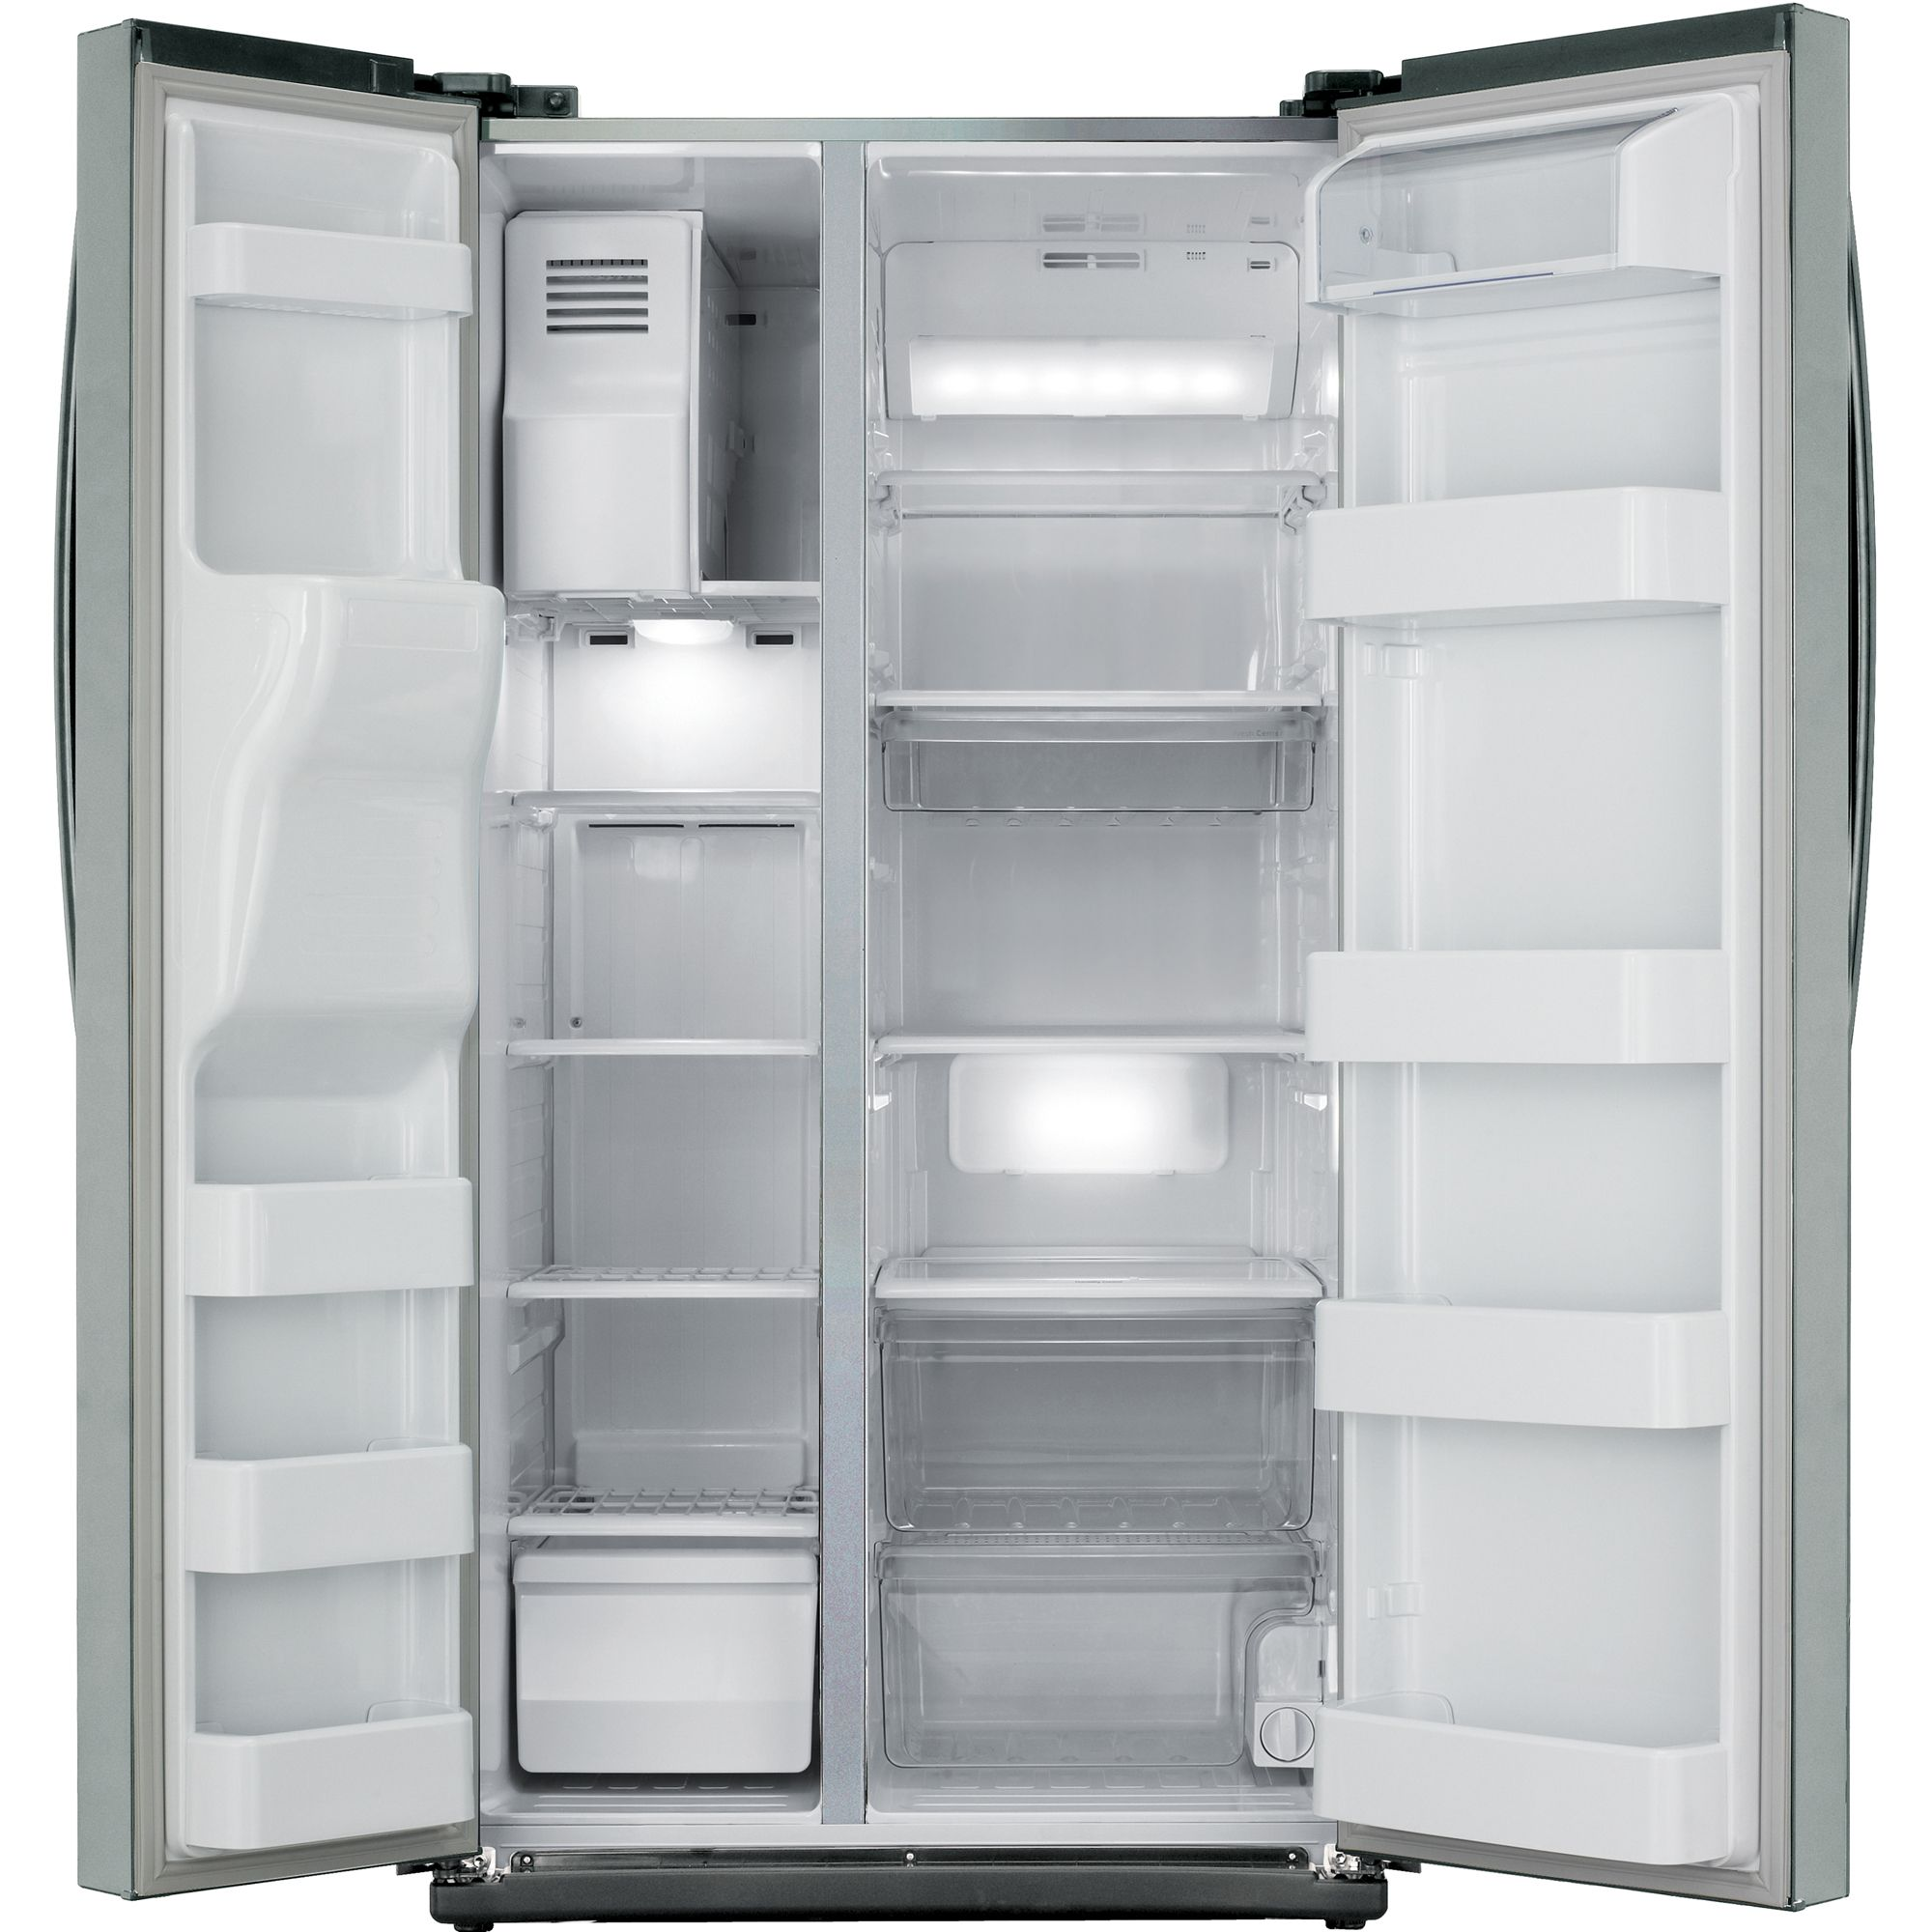 Samsung 26.0 cu. ft. Side-by-Side Refrigerator - Stainless Steel